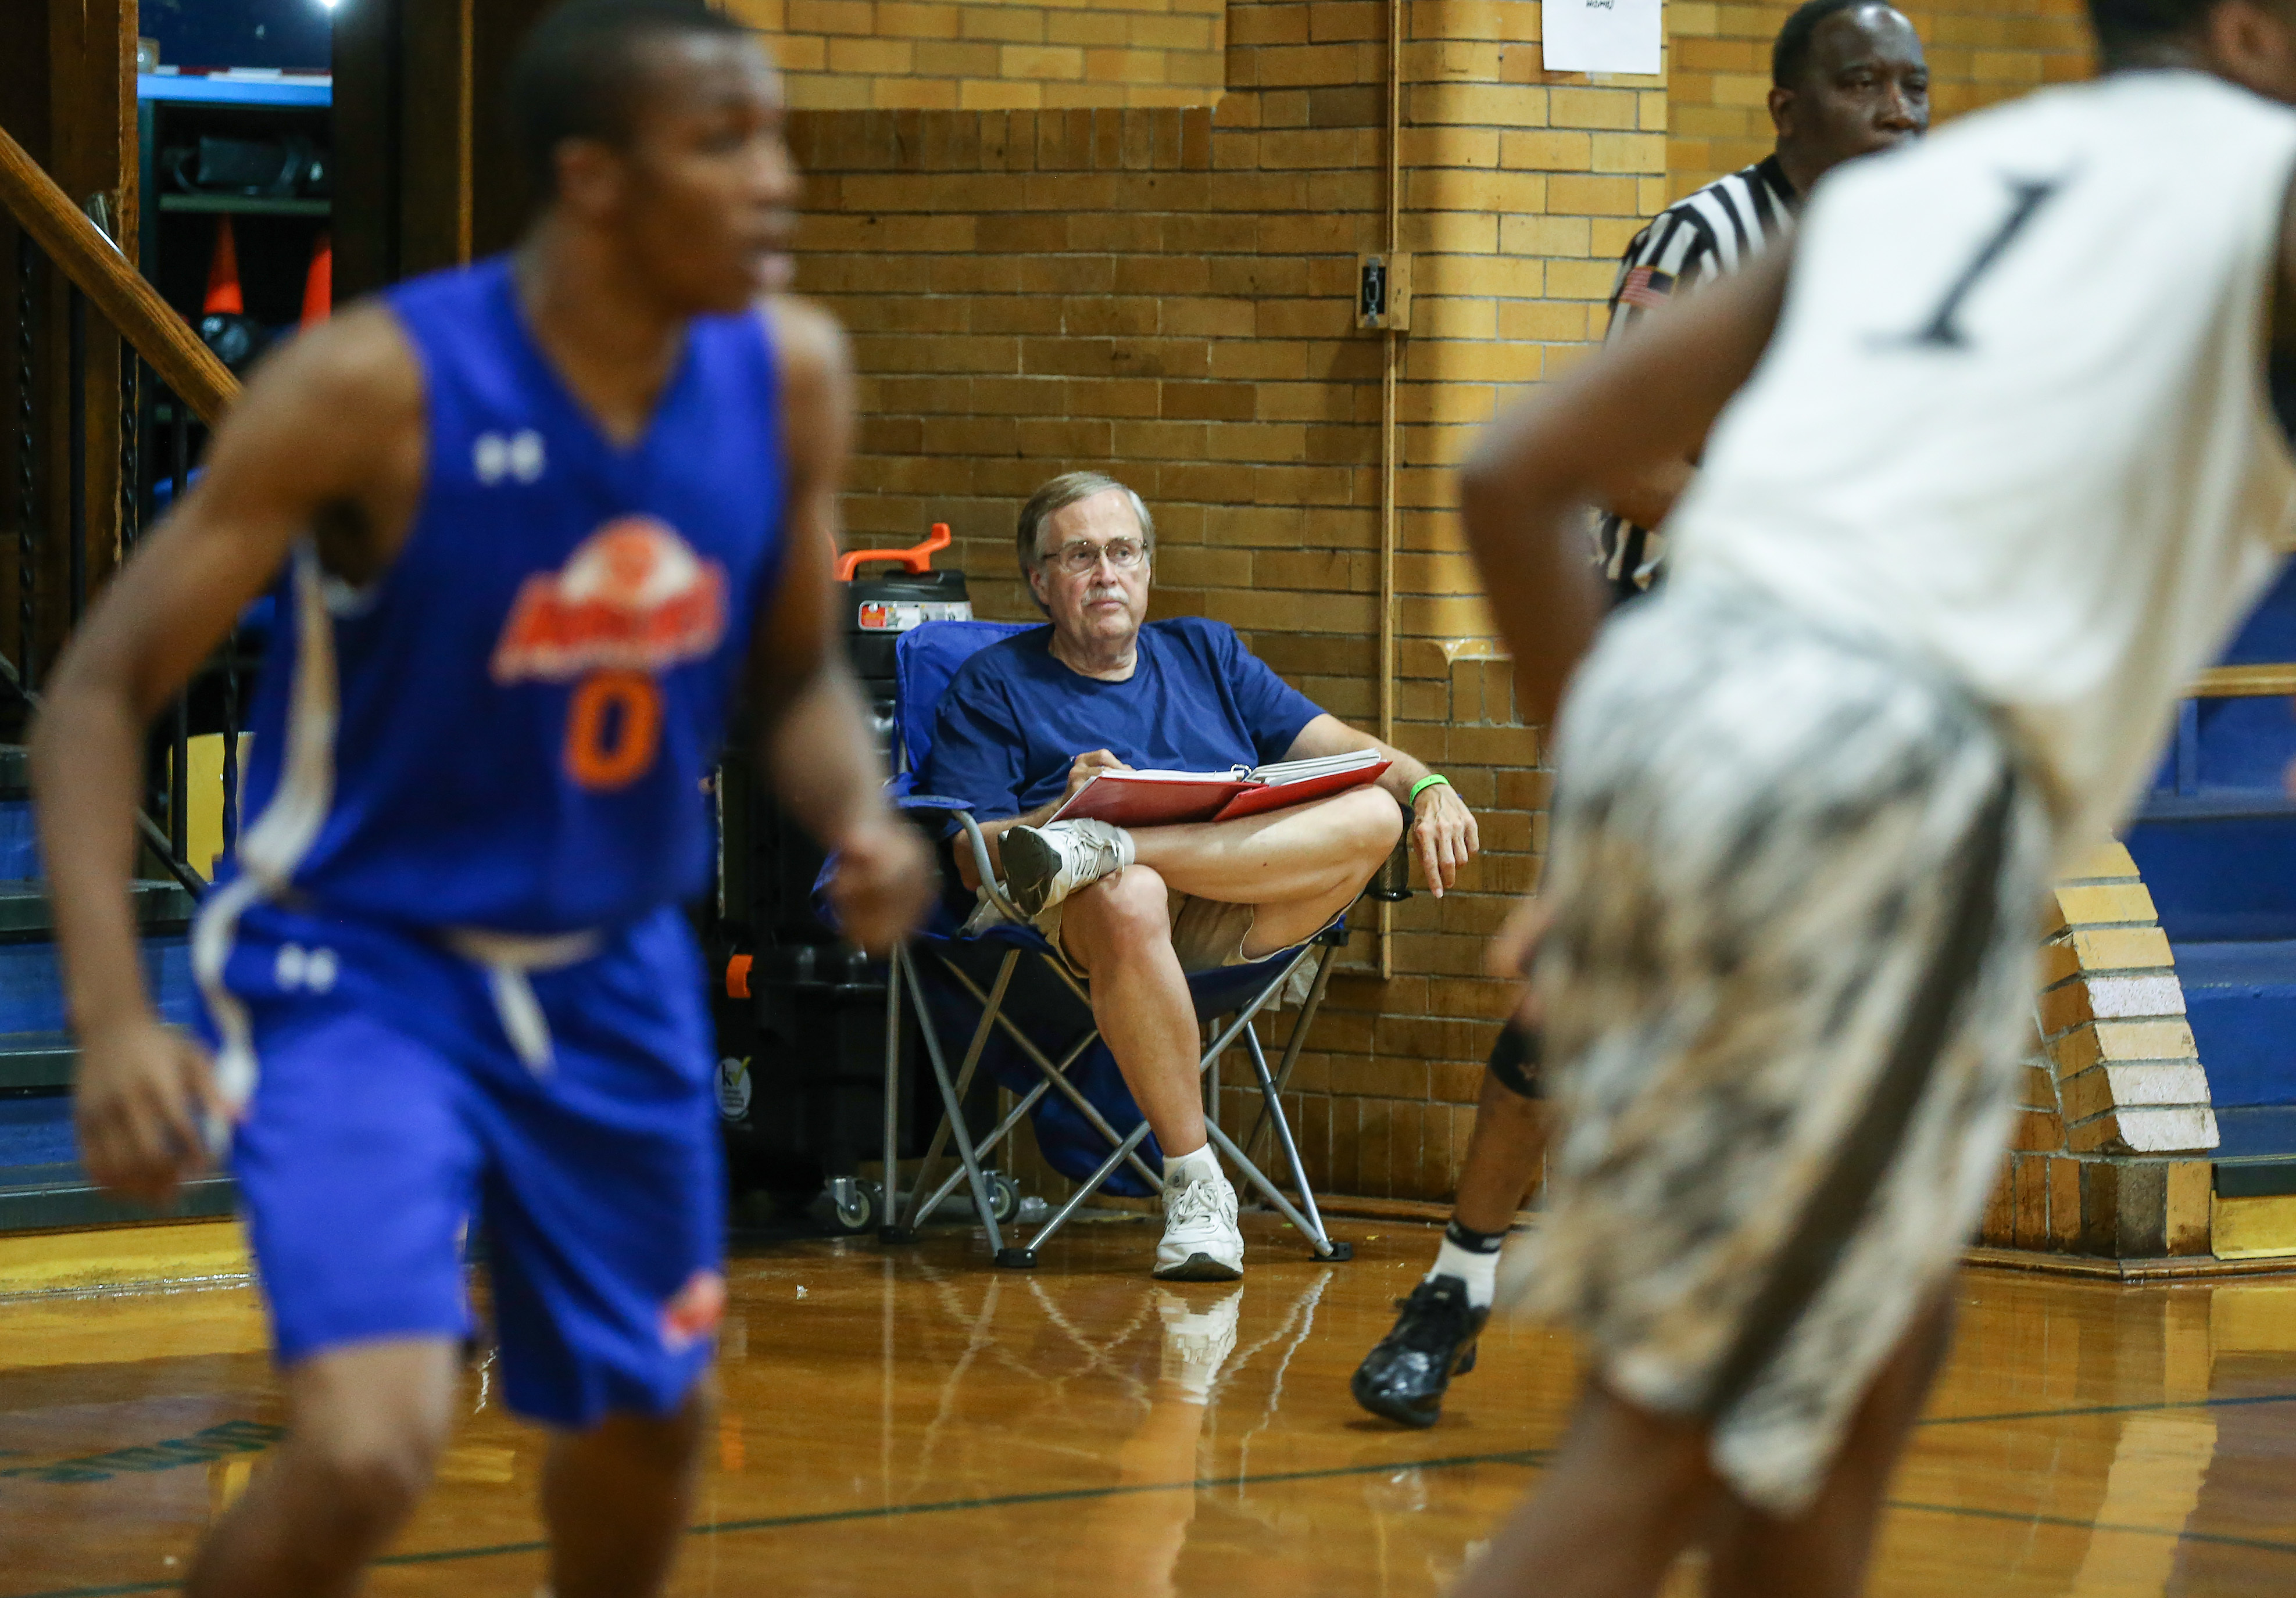 """Watching the """"Battle for Independence"""" tournament Norm Eavenson, a retired school teacher from West Chester, has been a top national talent evaluator for 25 years. He's accredited by NCAA, as required, and respected by every coach out there. West Catholic Prep High School, Sunday, July 2, 2017. STEVEN M. FALK / Staff Photographer"""